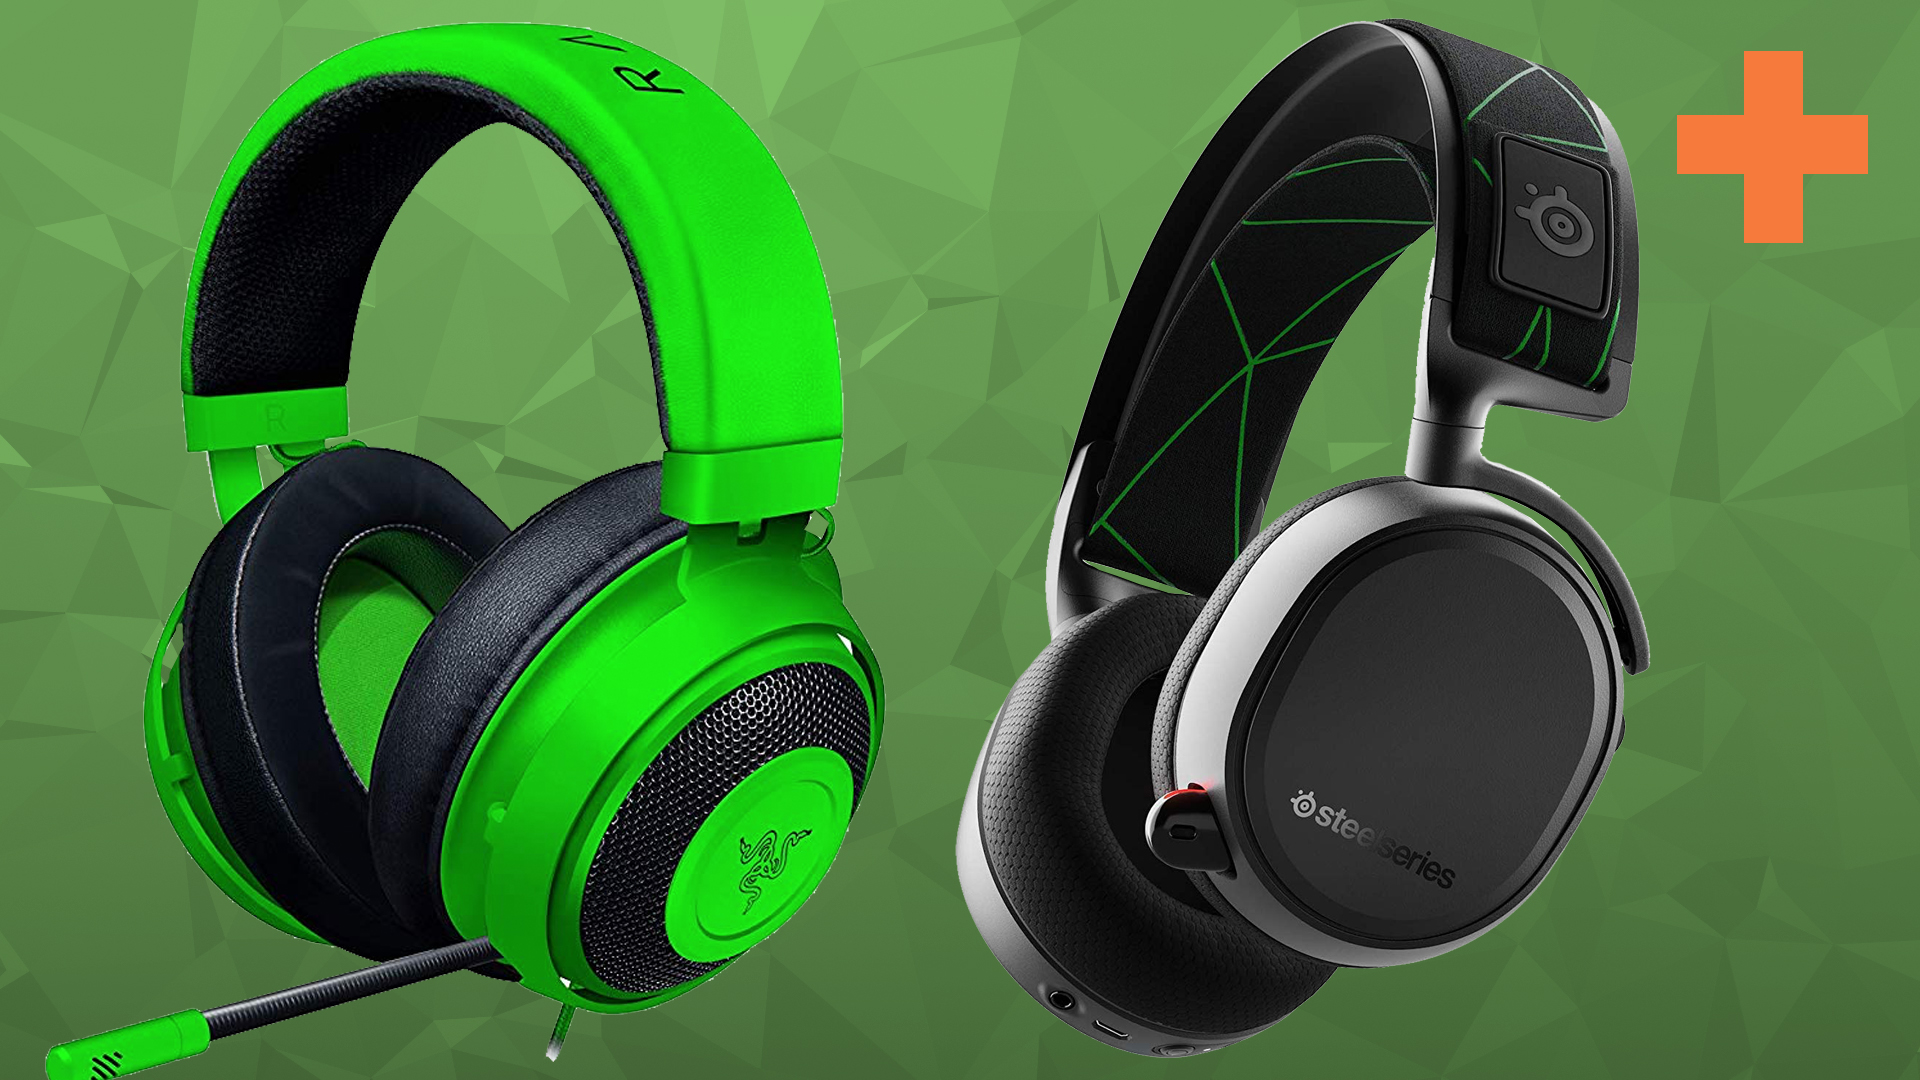 The Best Xbox One Headsets For 2020 Gamesradar - View Wireless Gaming Headset Ps4 Test Pictures